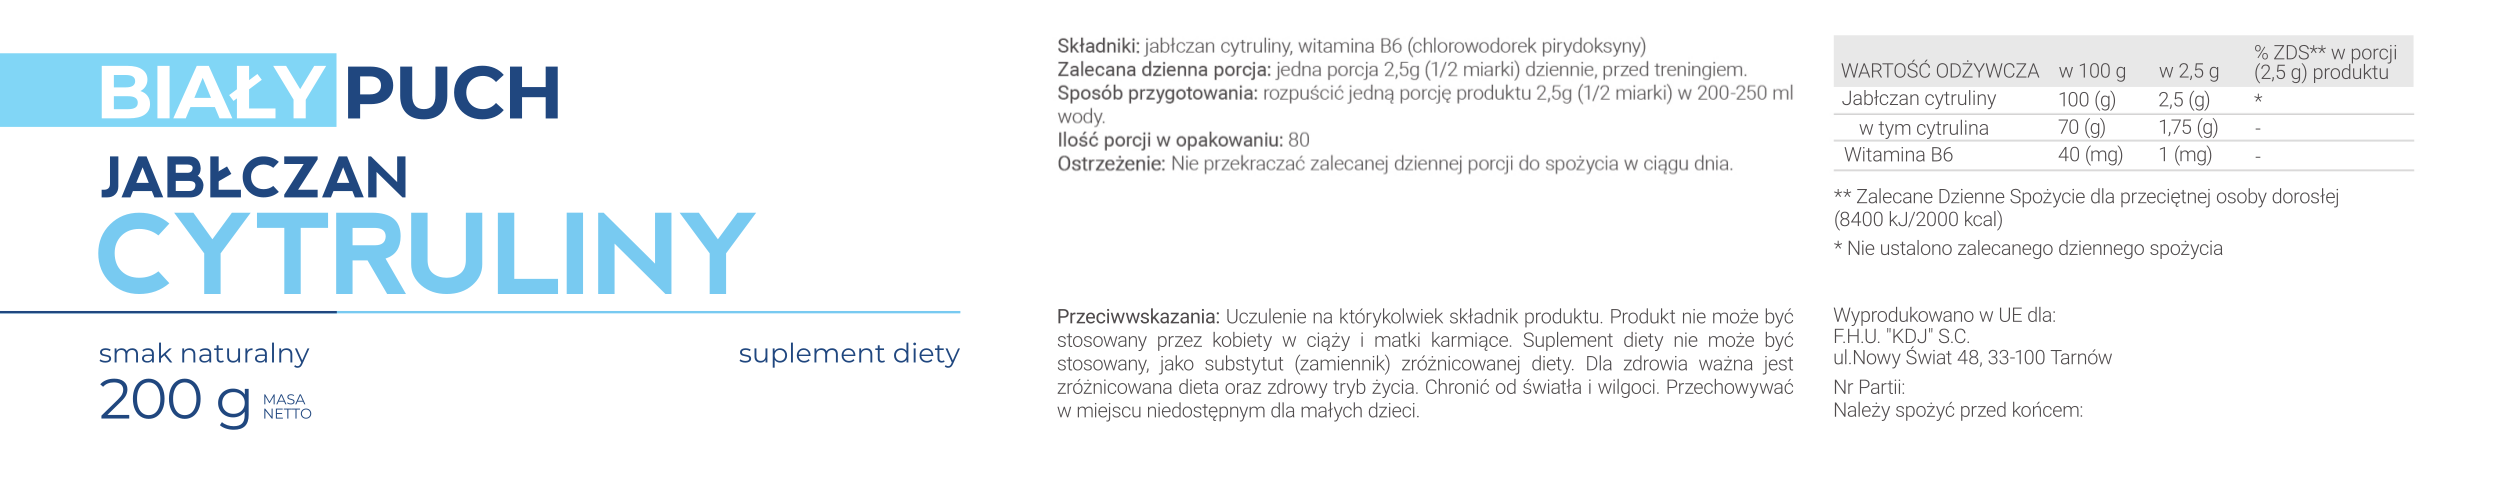 jablczancytruliny_bialypuch_(1).png